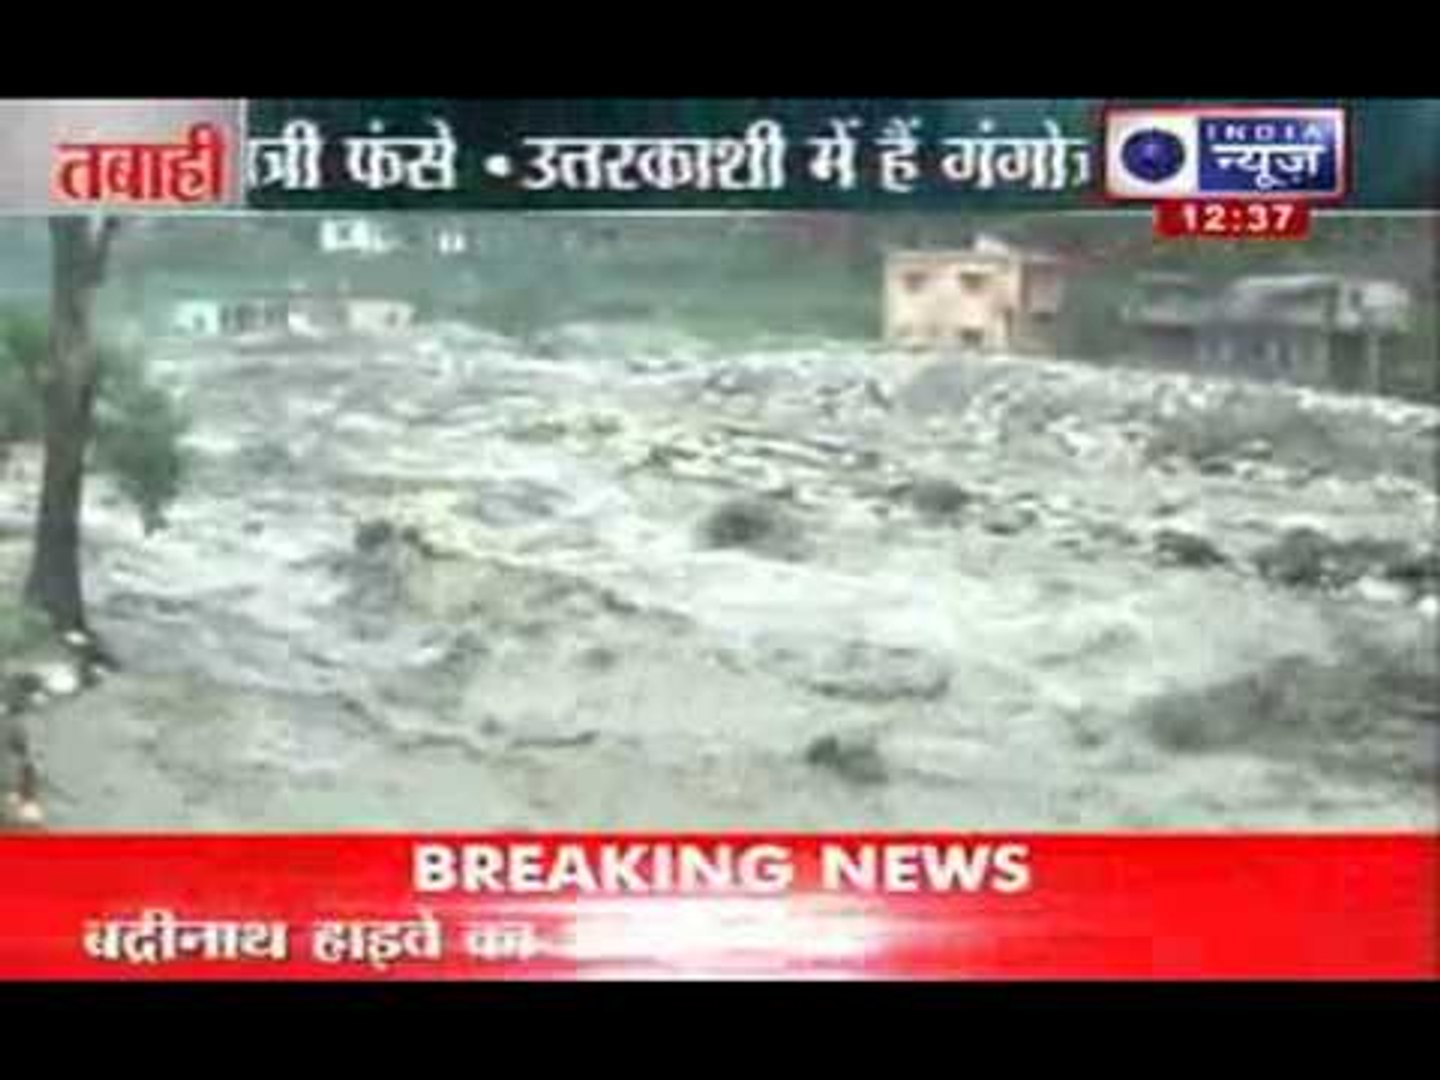 India News: After effects of heavy showers in North India